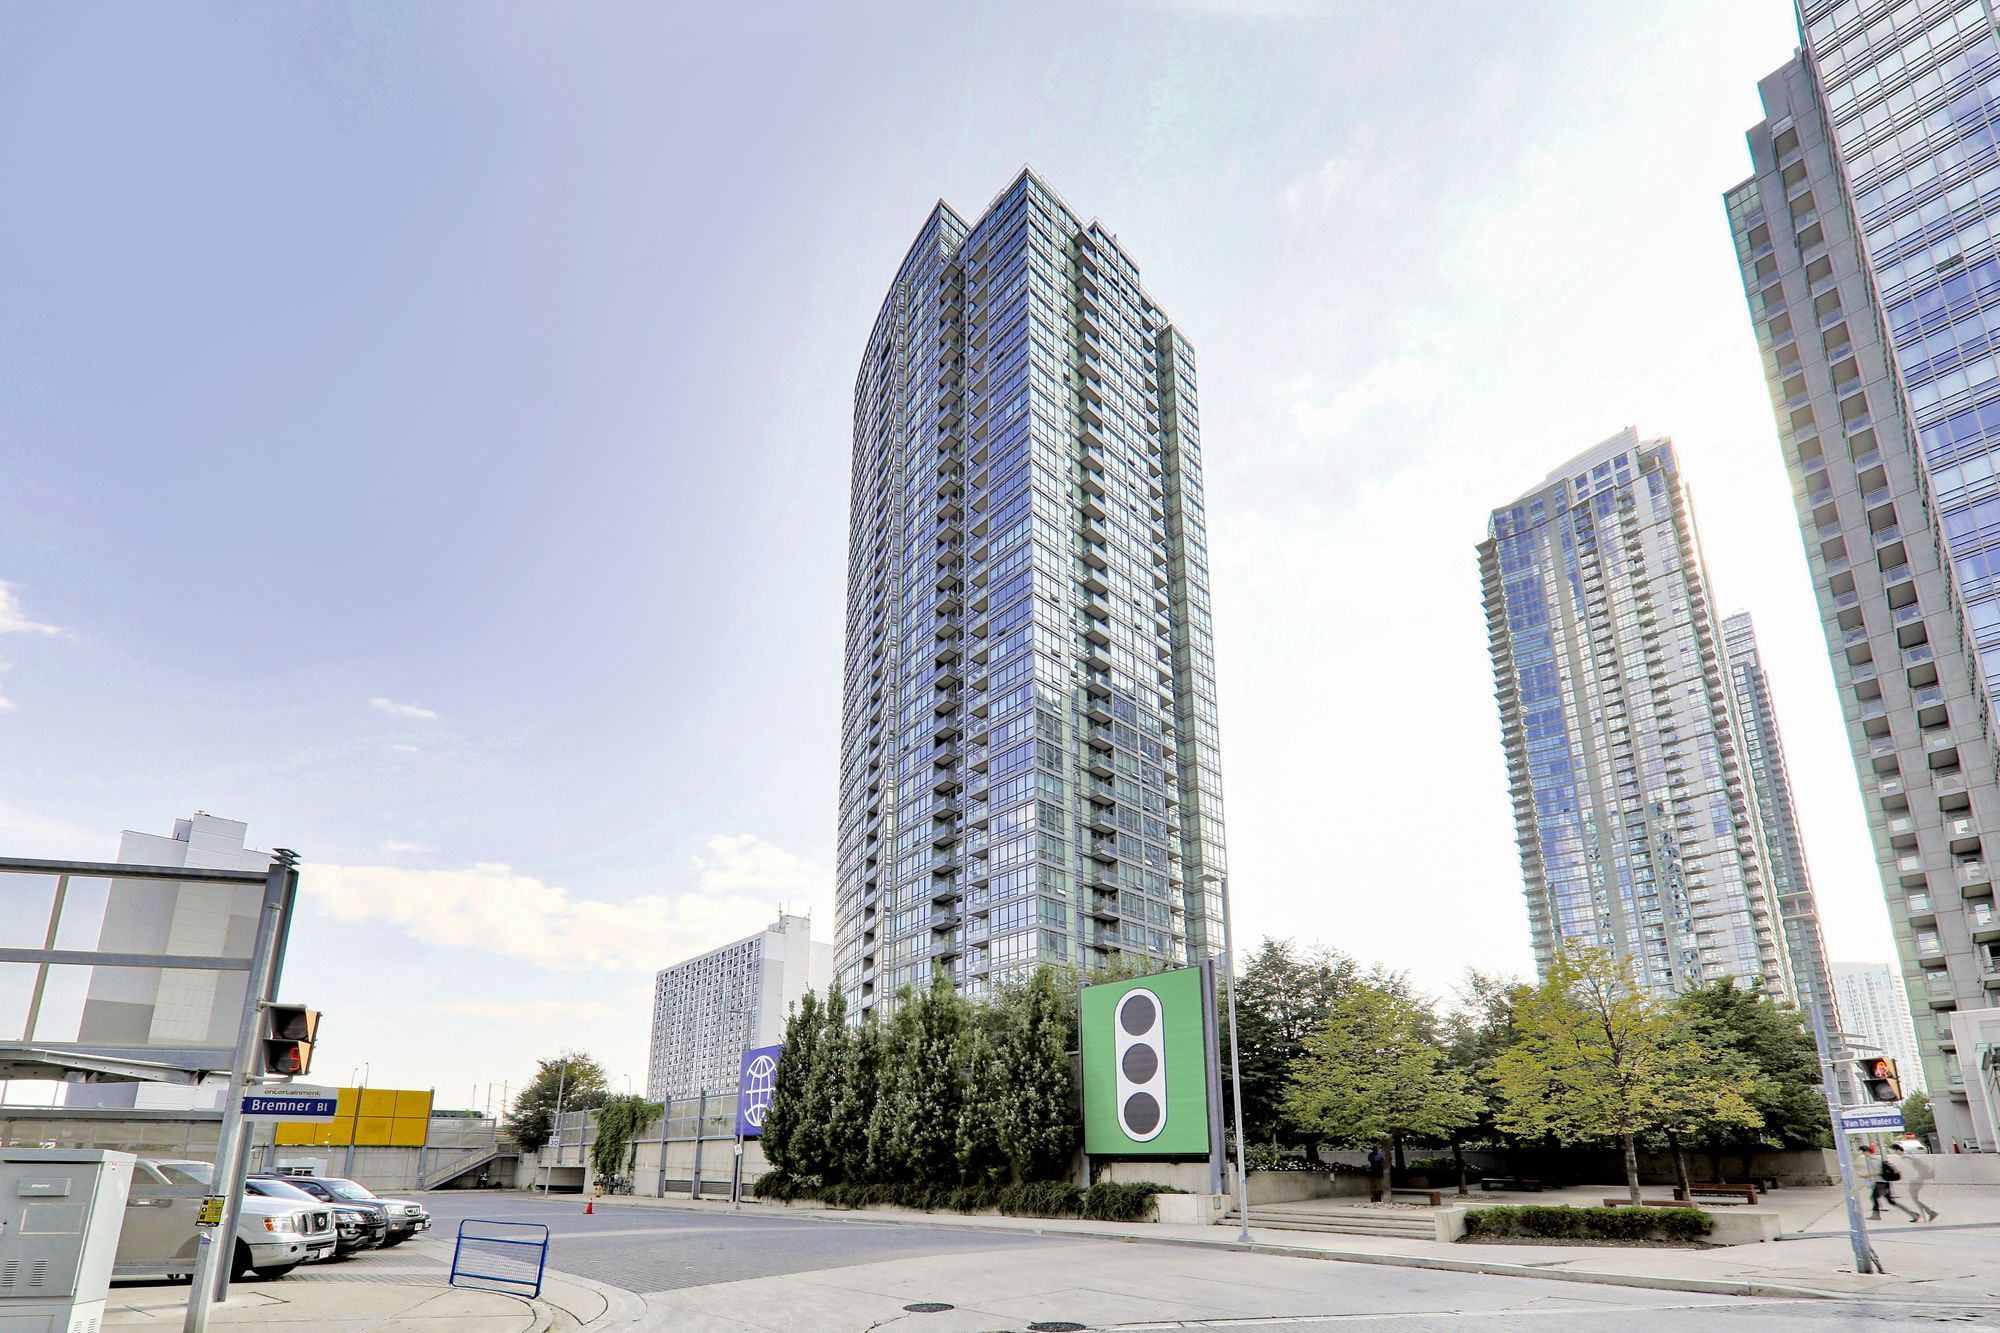 5 Mariner Terr. This condo at Harbour View Estates III Condos is located in  Downtown, Toronto - image #2 of 7 by Strata.ca